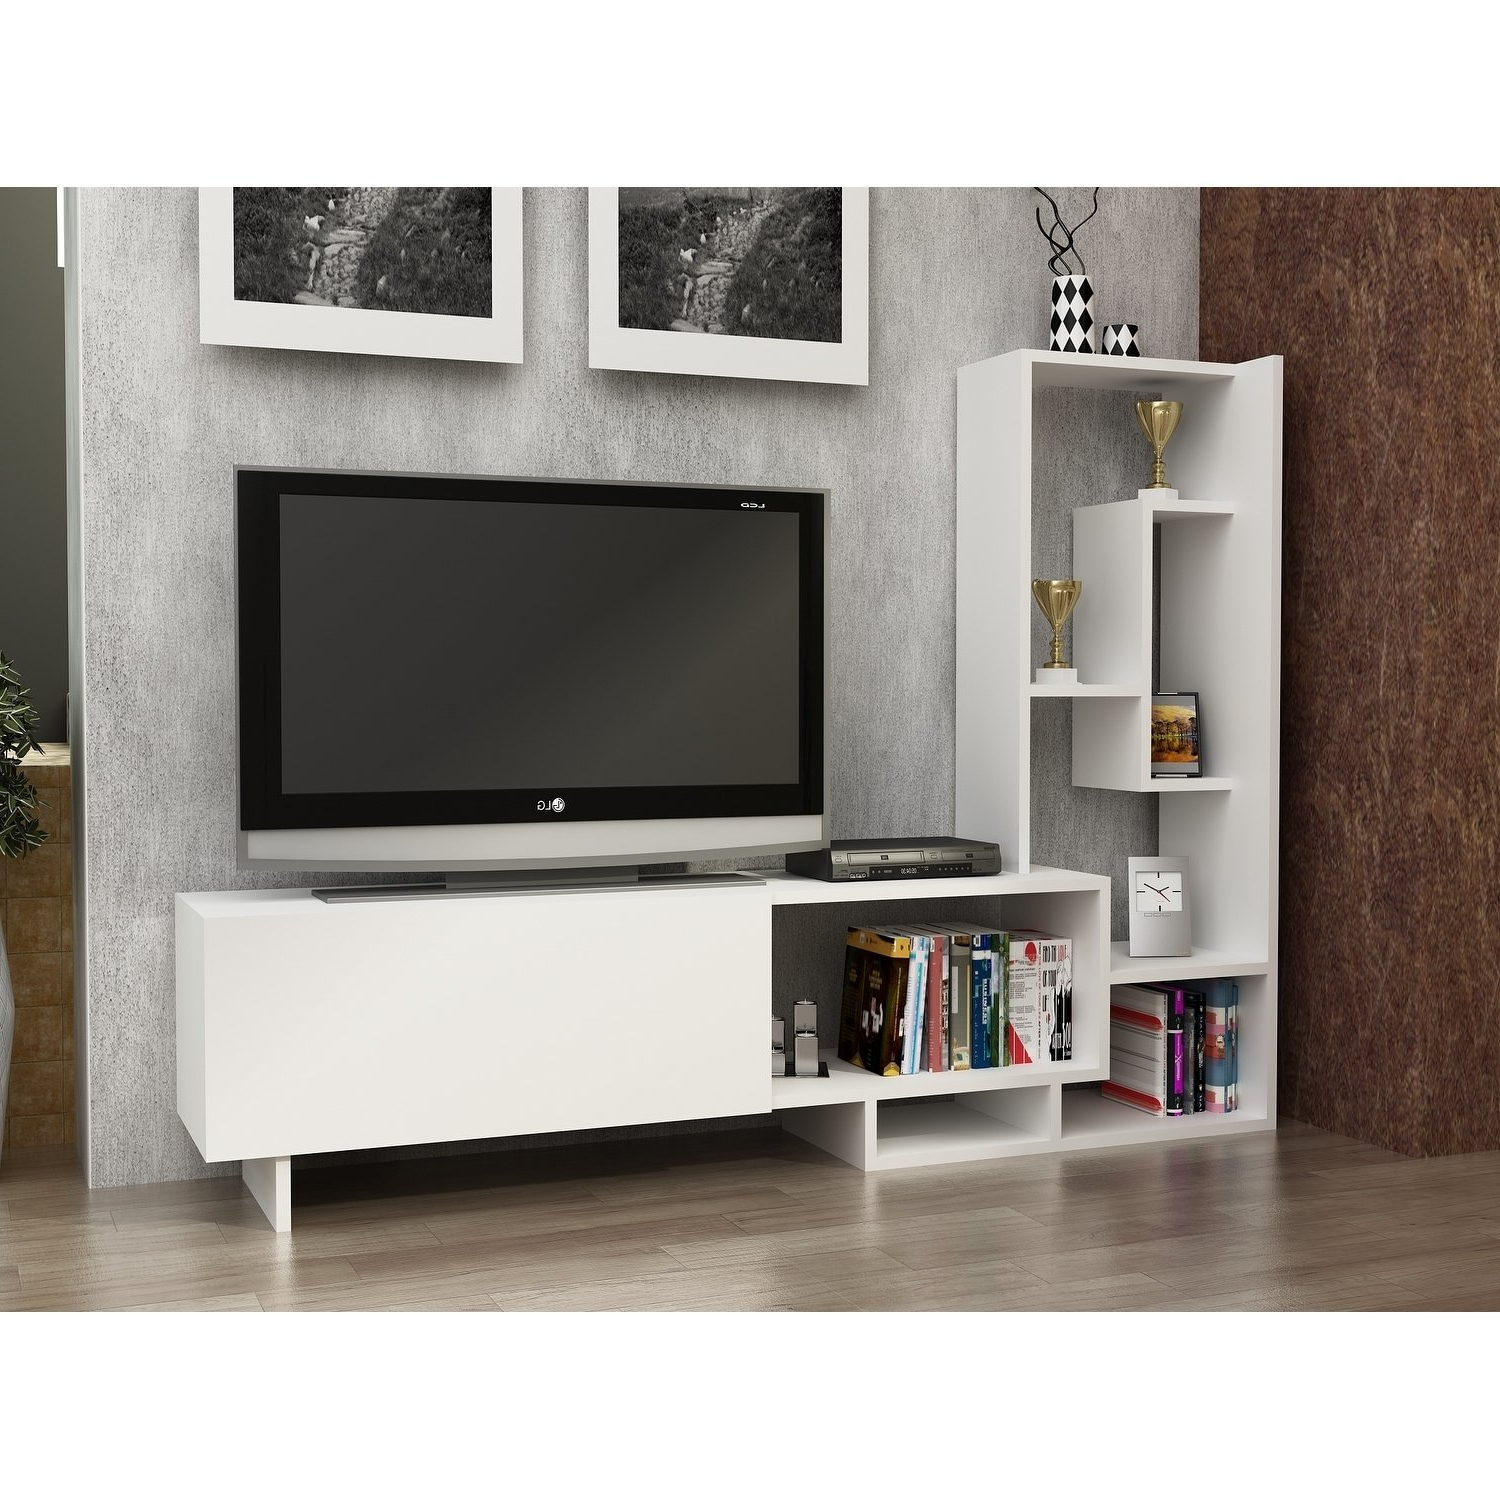 Shop Decorotika Pegai White Wood 60 Inch Tv Stand With Bookshelves Within Canyon 54 Inch Tv Stands (Gallery 10 of 20)